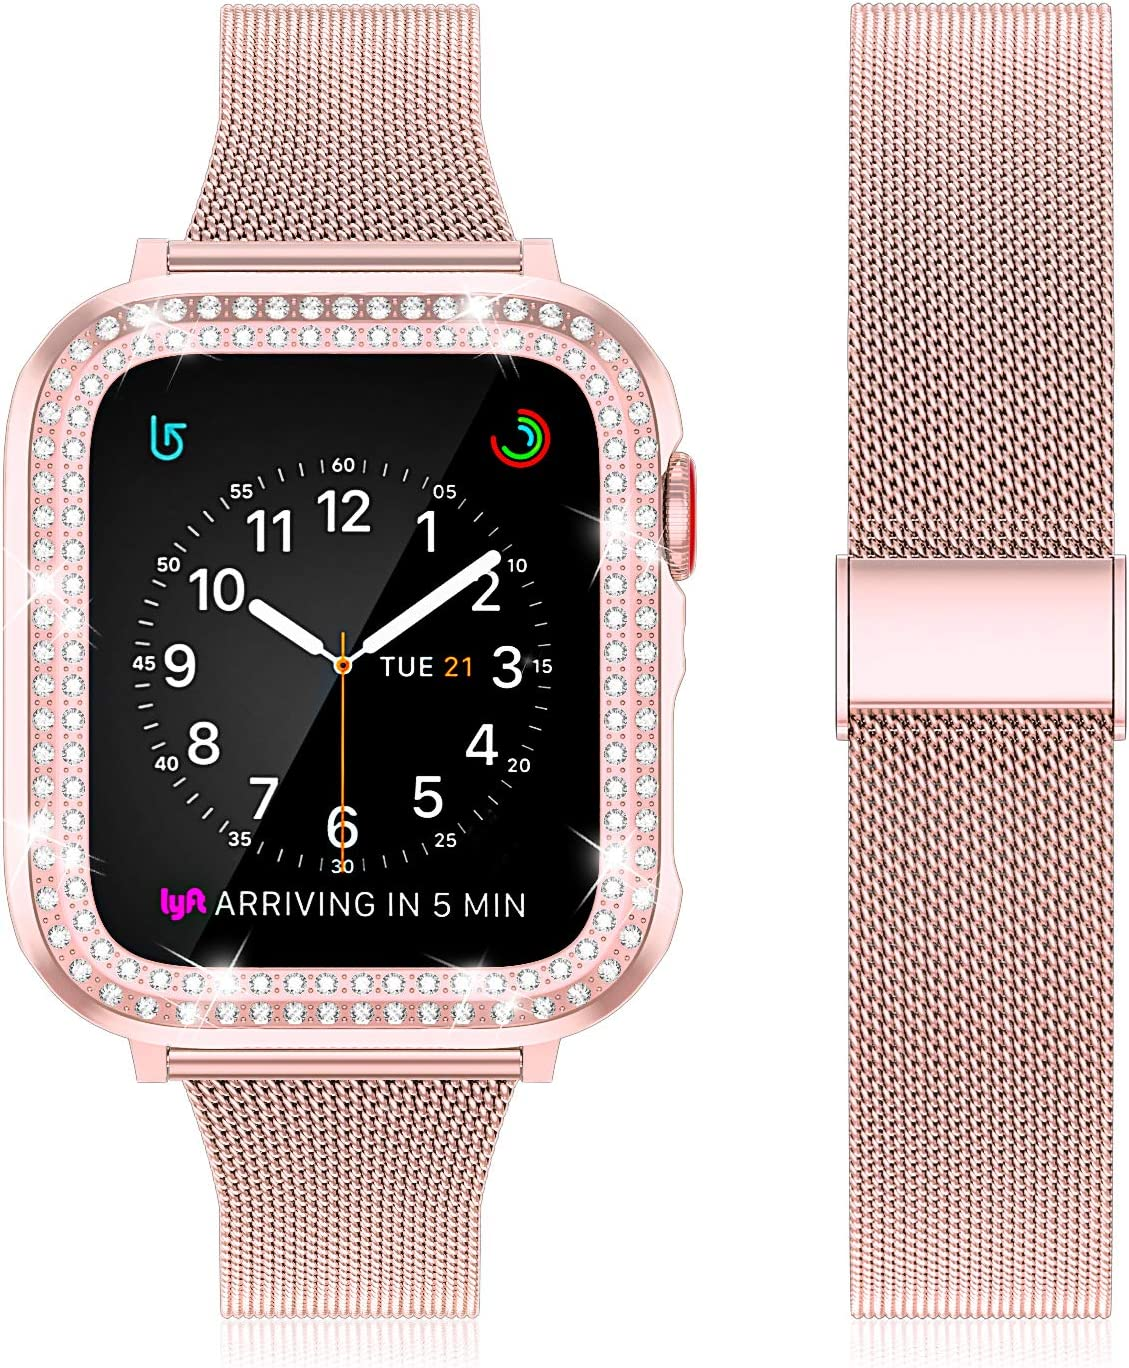 Beuxece Stainless Steel Mesh Band Compatible with Apple Watch Bands Series SE/6/5/4/3/2/1 with Diamond Case, Mesh Band Slim Metal for iWatch 38mm 40mm 42mm 44mm Bracelet Replacement,PInk,44mm